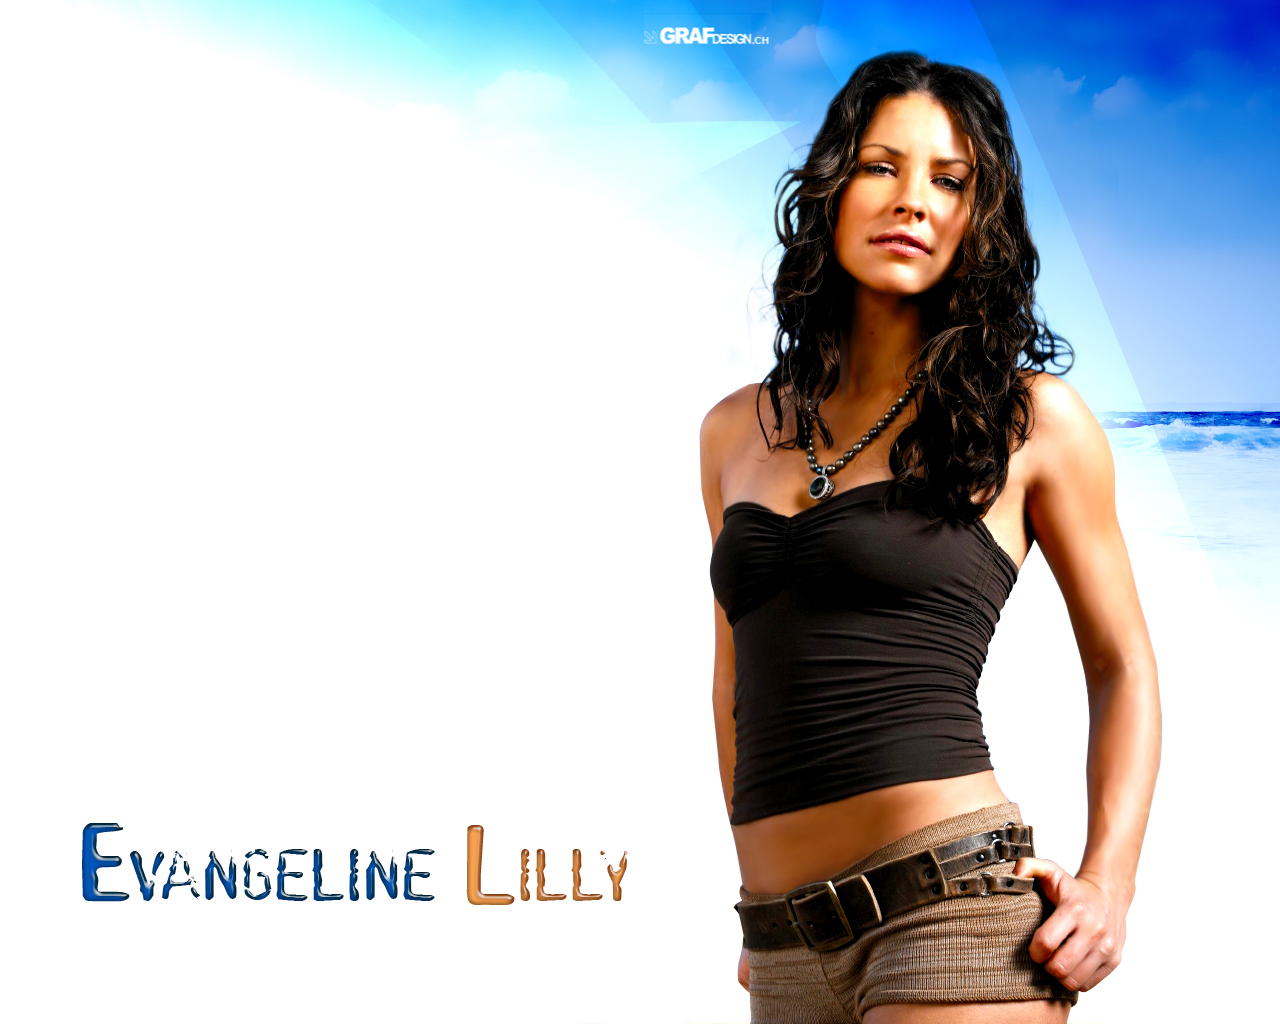 on the beach on set evangeline lilly hd desktop wallpaper background 1280x1024